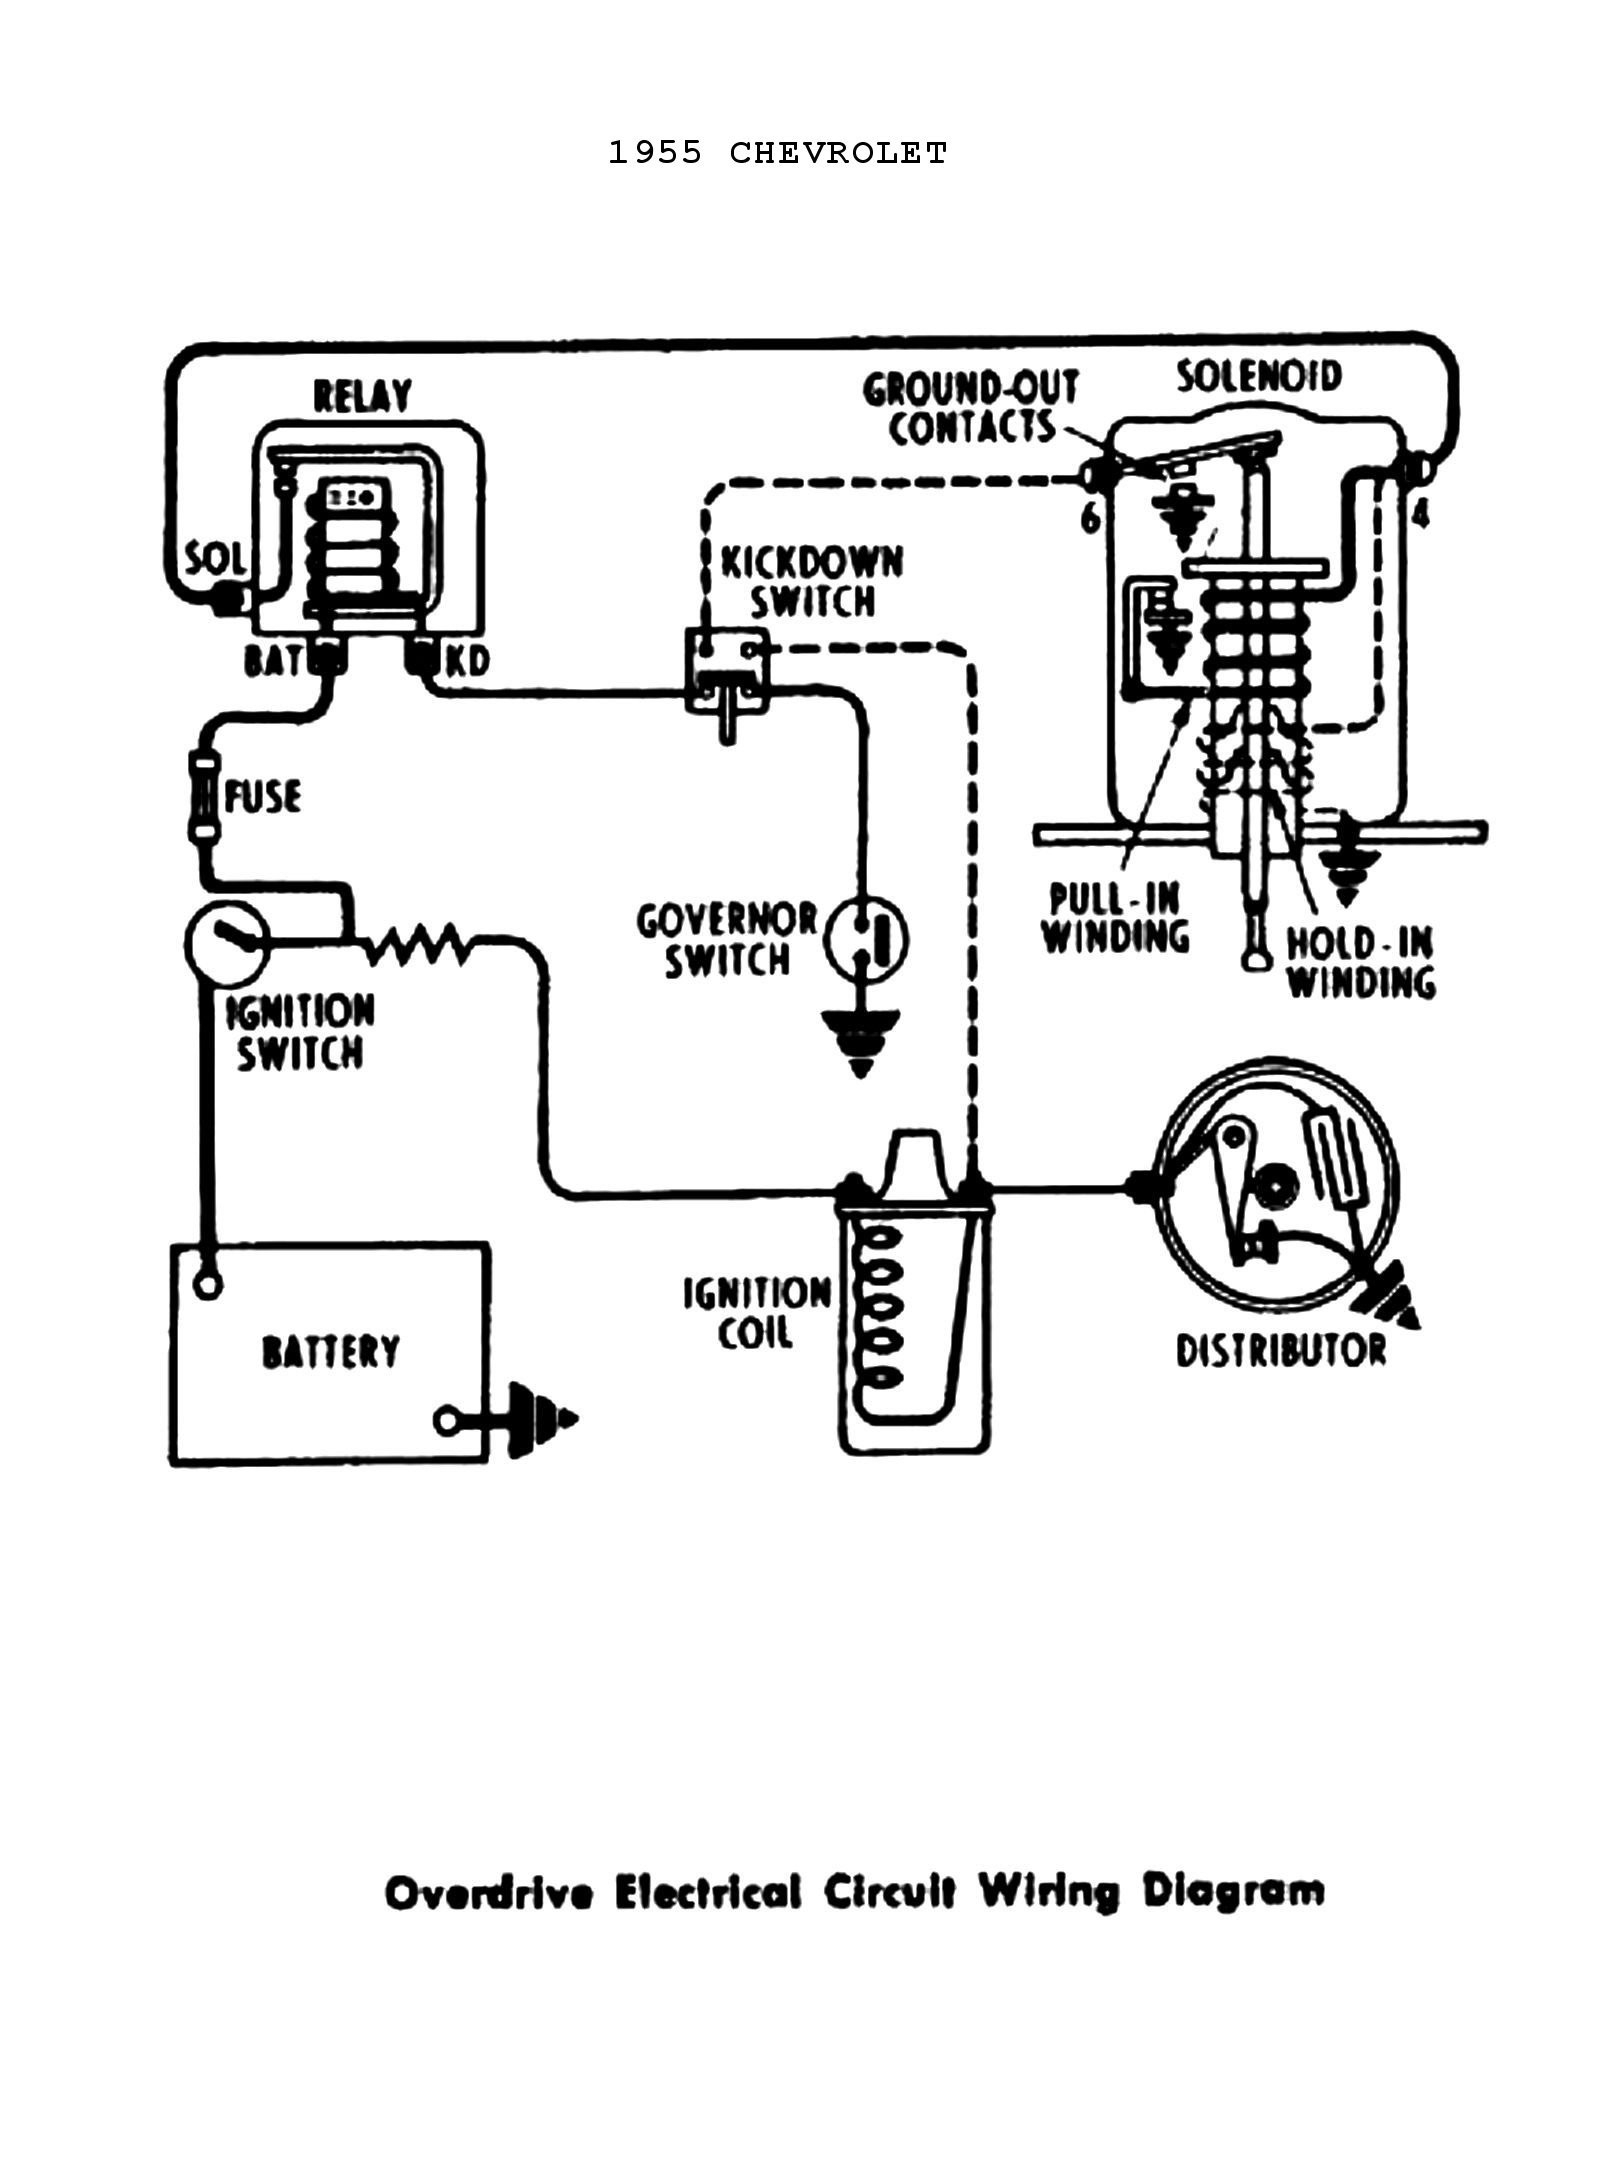 simple ignition wiring diagram Collection-Ignition Coil Wiring Diagram Collection 1955 Power Windows & Seats · 1955 Overdrive Circuit Chevy 2-b